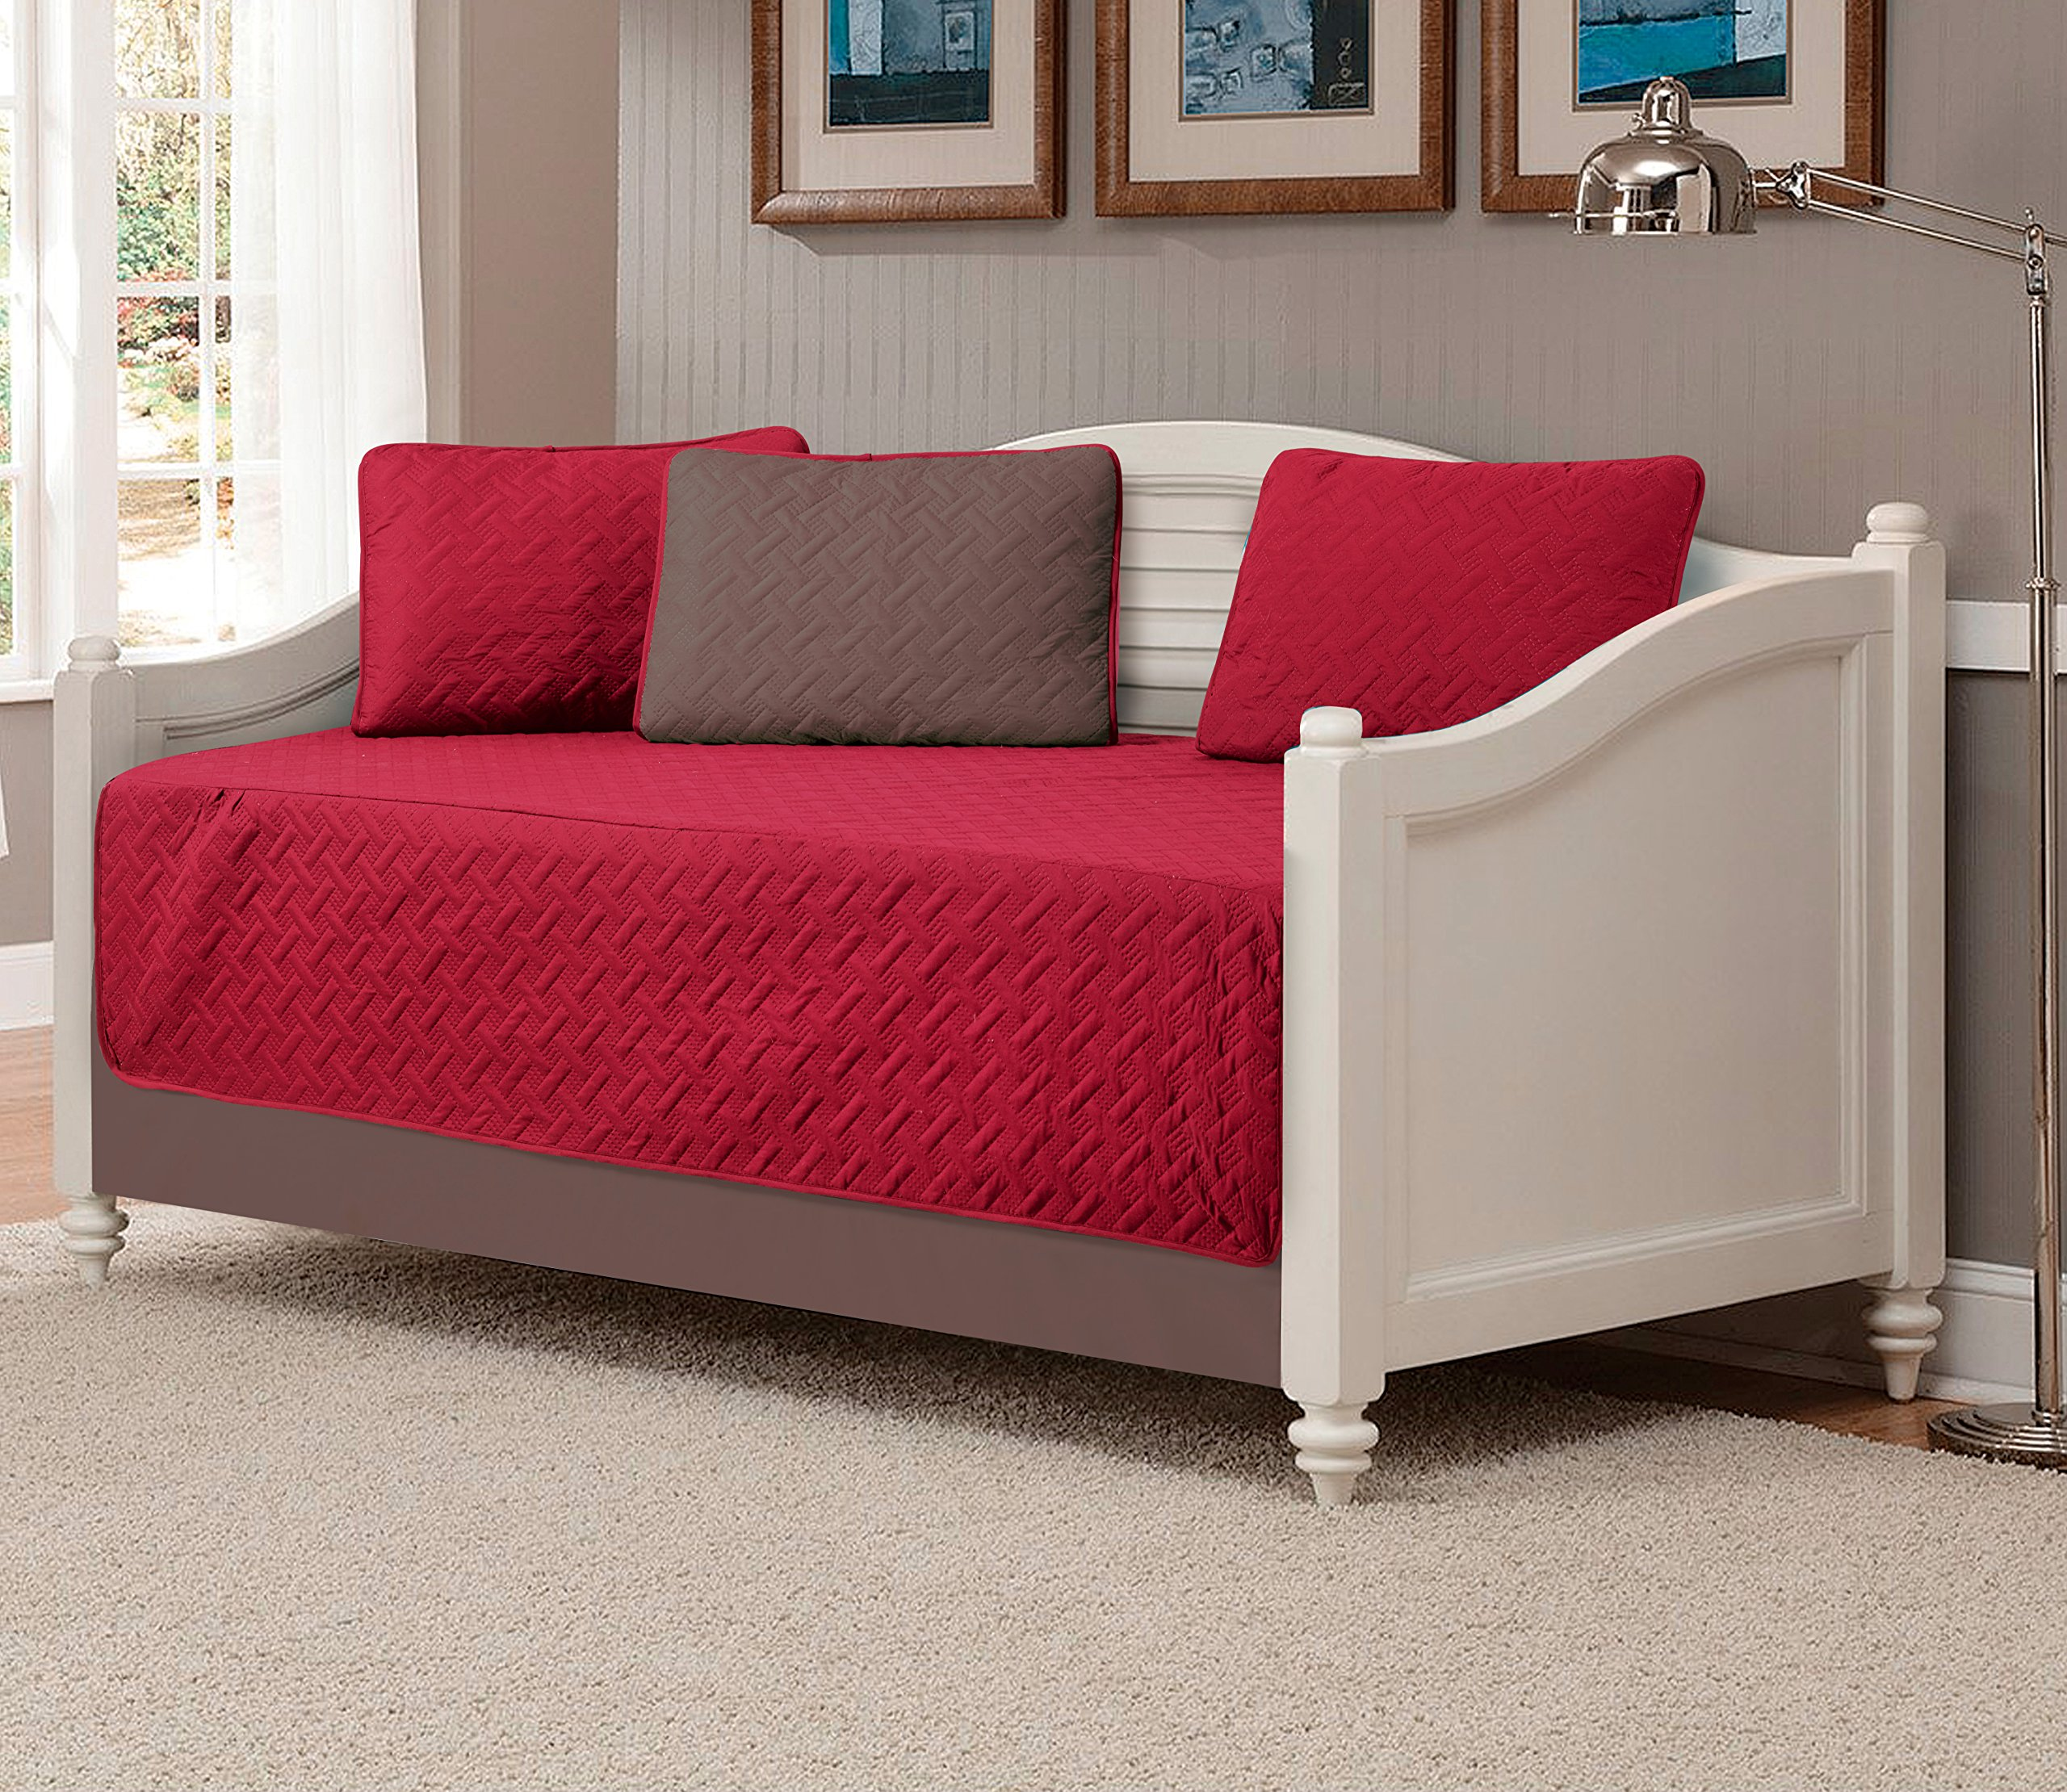 Mk Collection 5pc Modern Bedspread DayBed Solid Embossed Reversible Burgundy/Taupe New